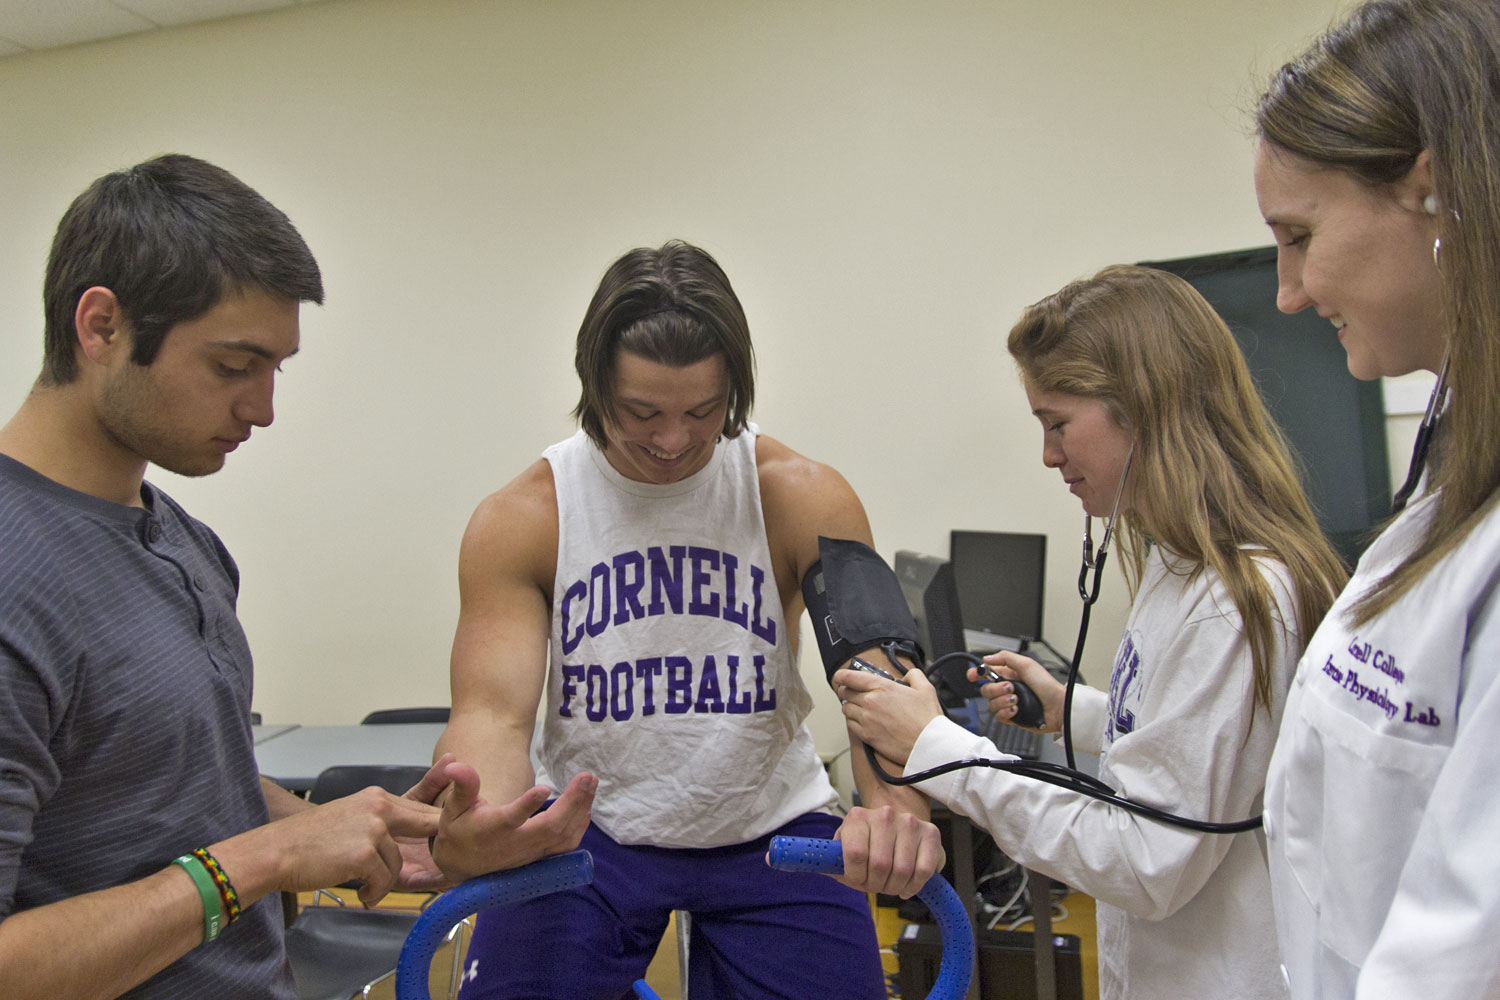 Exercise Physiology lab students